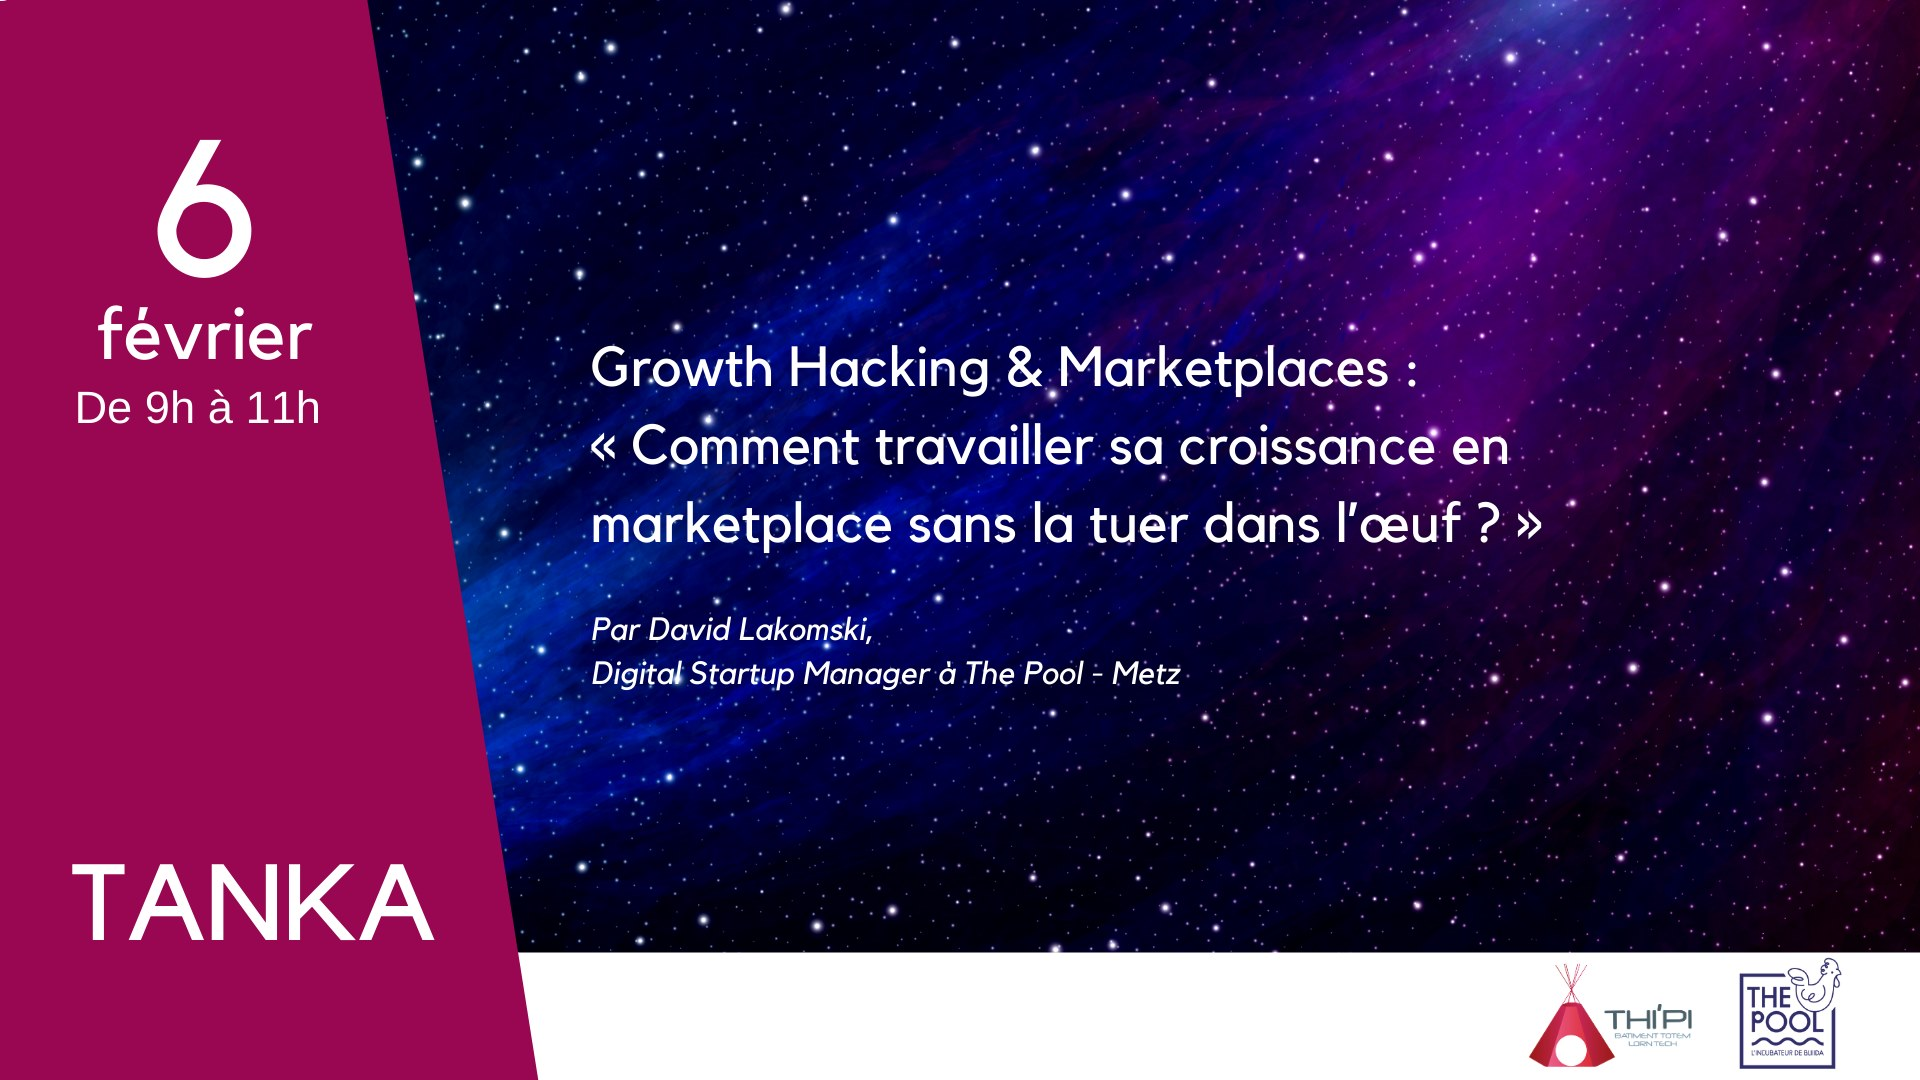 Tanka Growth Hacking et marketplaces - The Pool